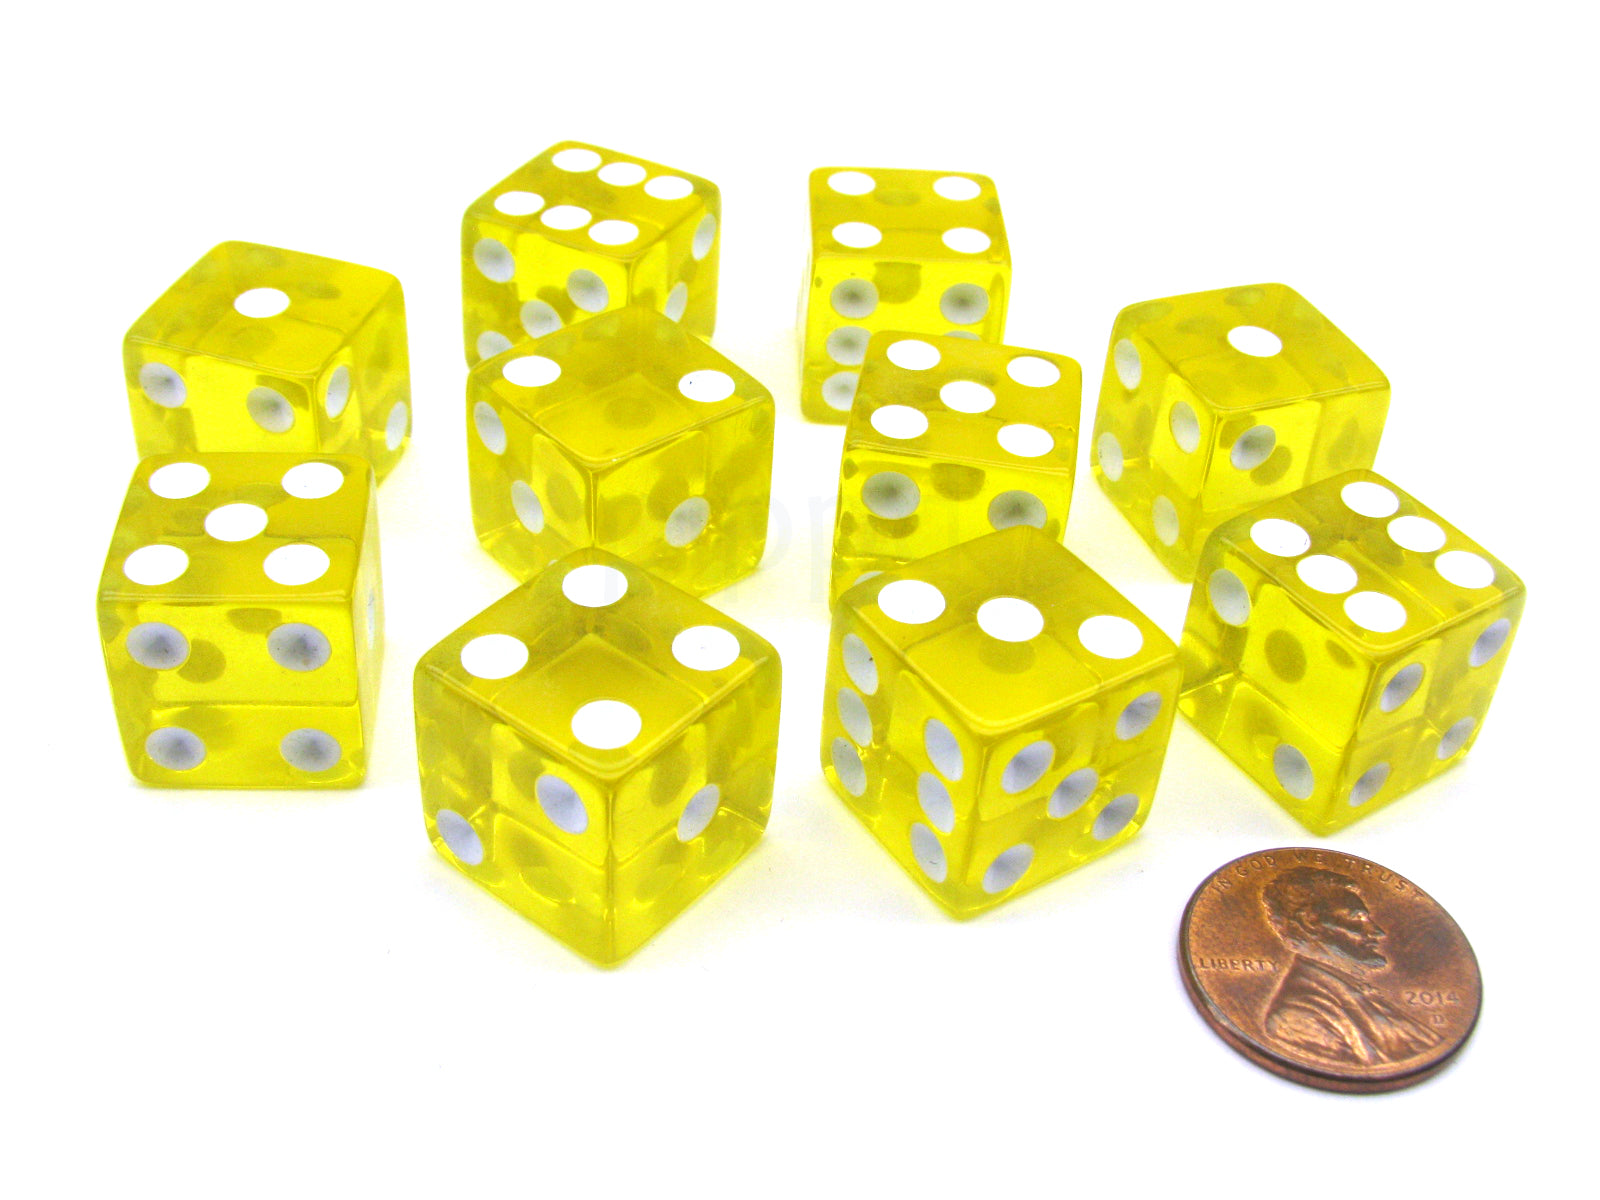 Pack of 10 16mm D6 Square Edge Transparent Dice - Yellow with White Pips